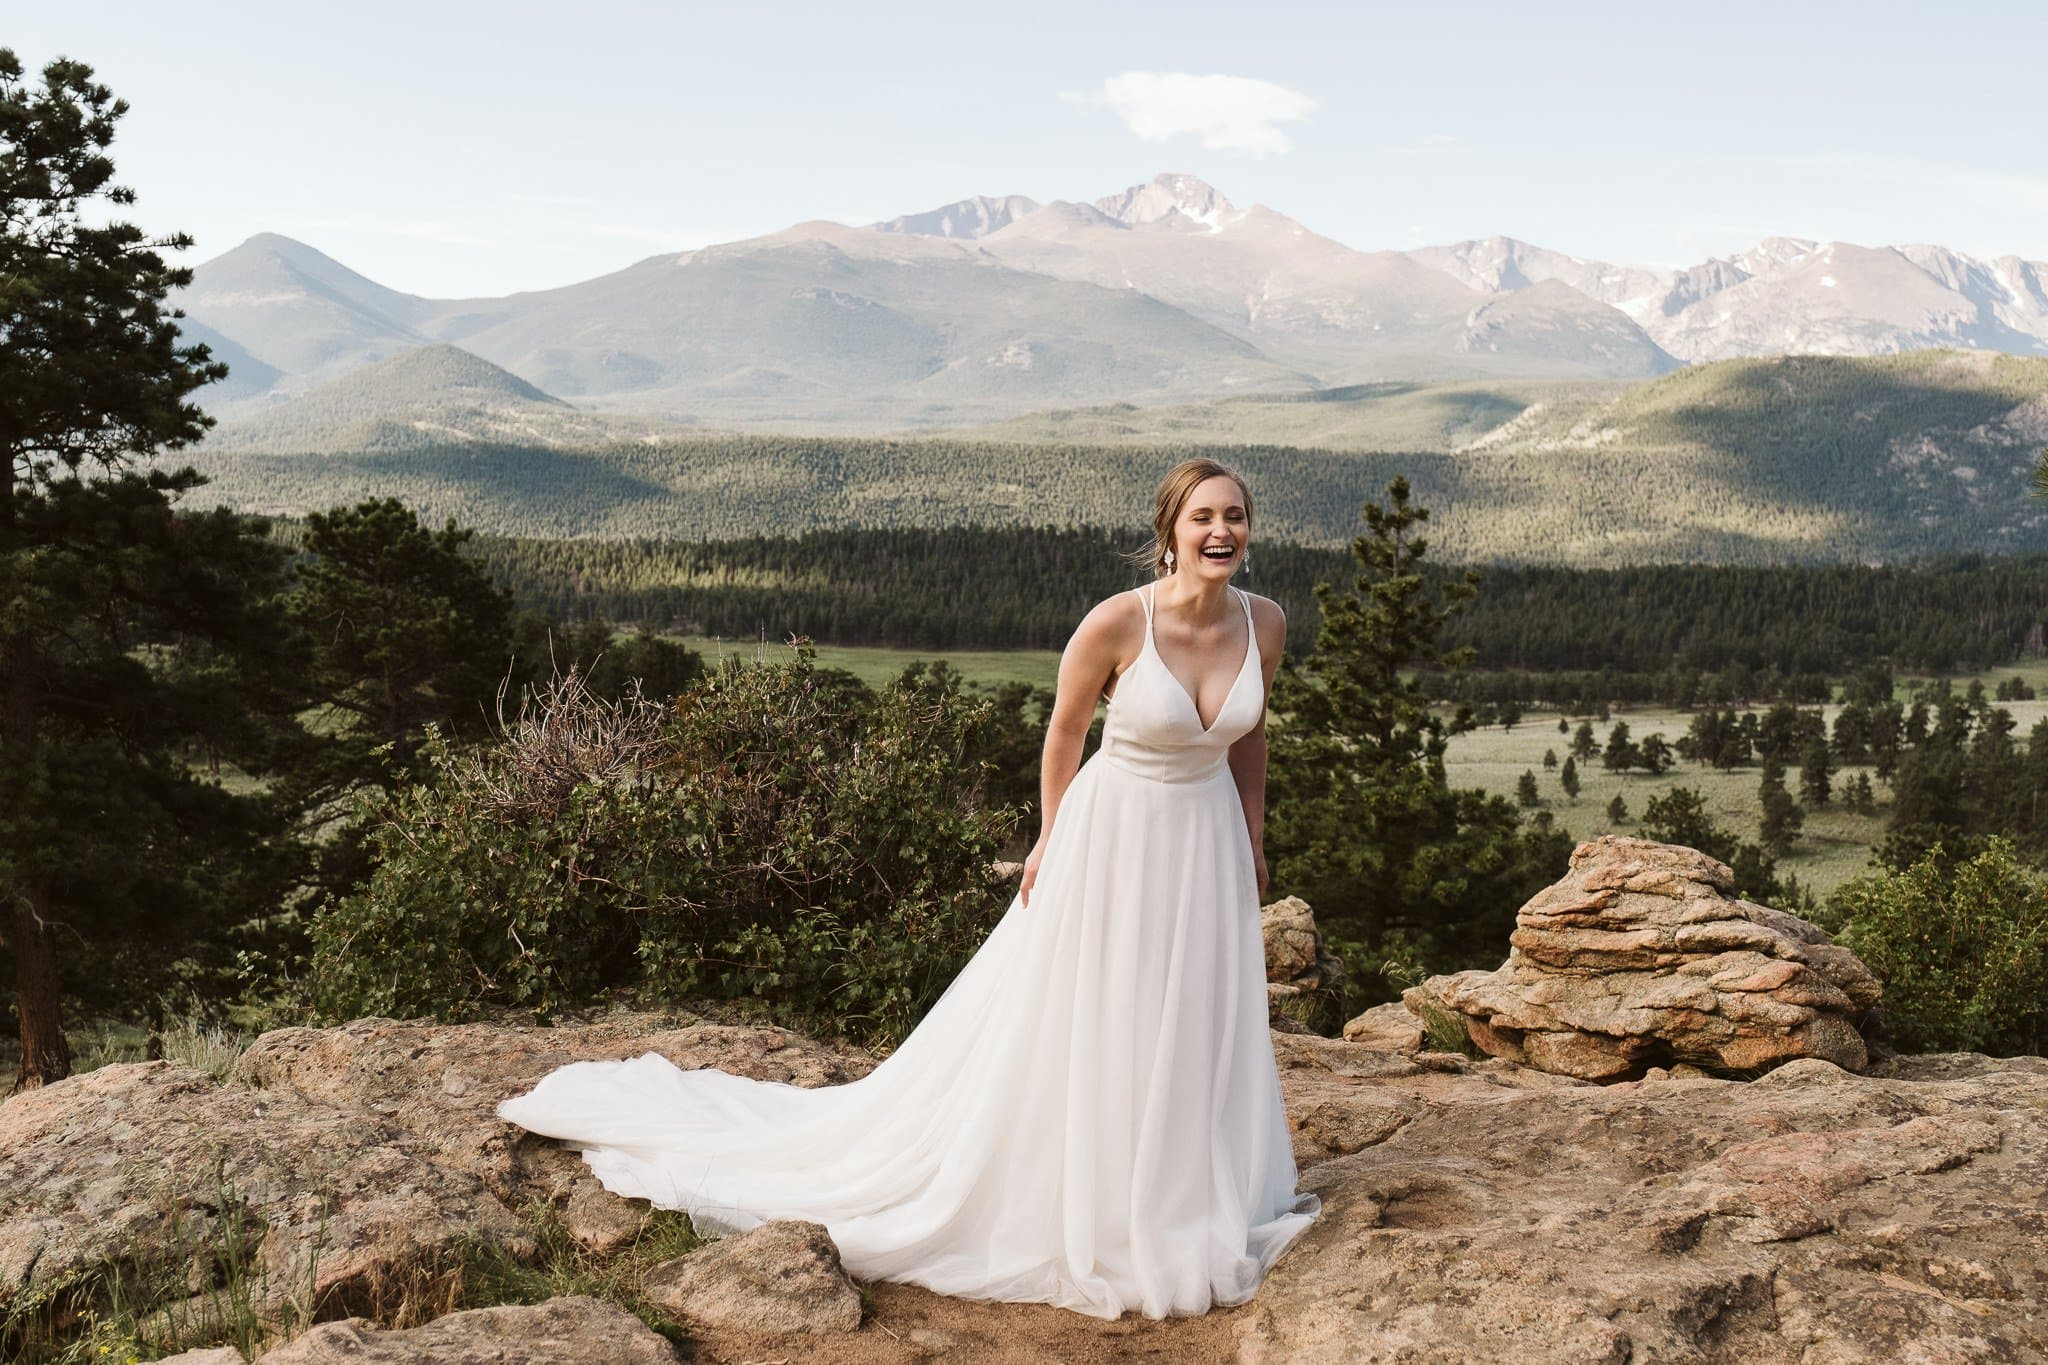 Bride in flowy dress with chiffon skirt, wedding dress for hiking elopement, Colorado wedding photographer